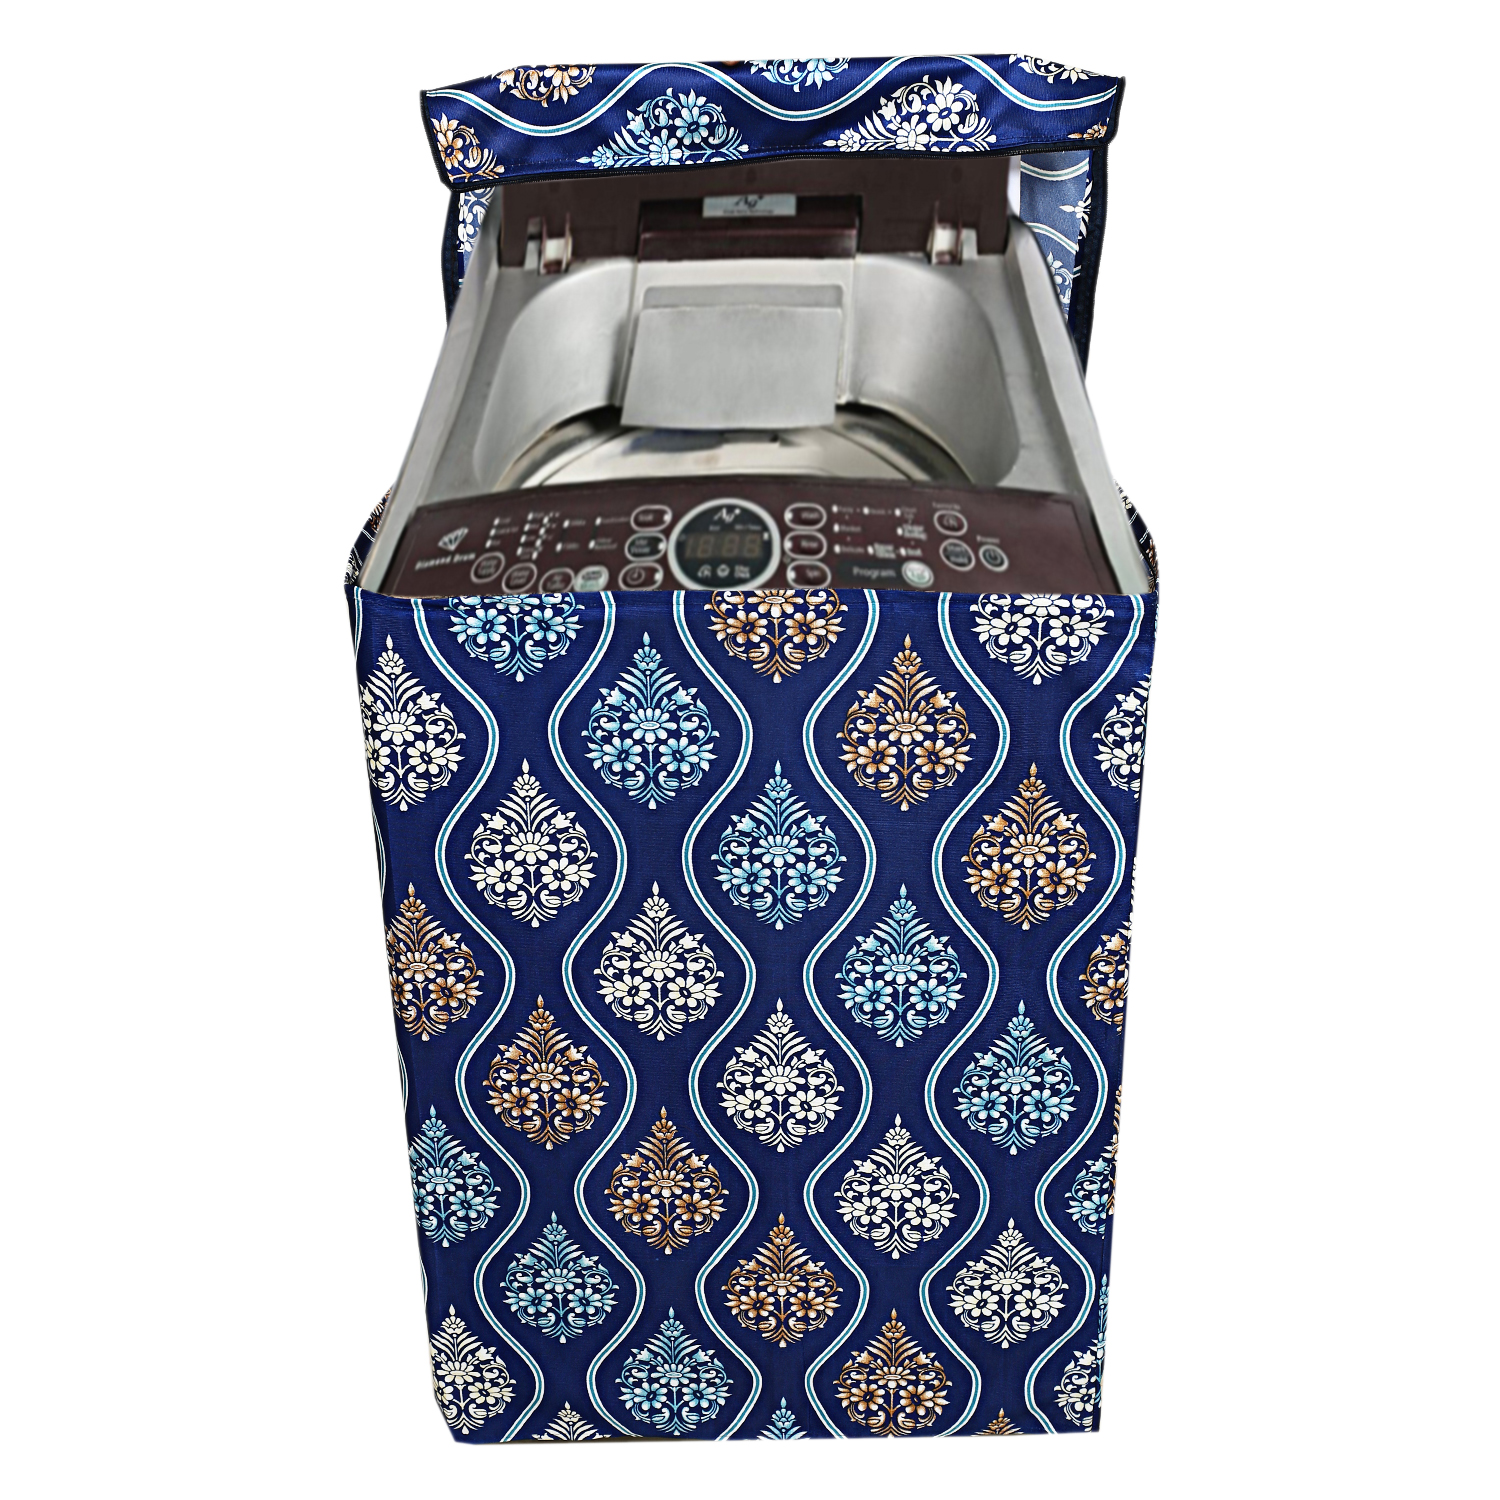 Kuber Industries Cotton Top Load Fully Automatic Washing Machine Cover (Blue)-CTKTC3870